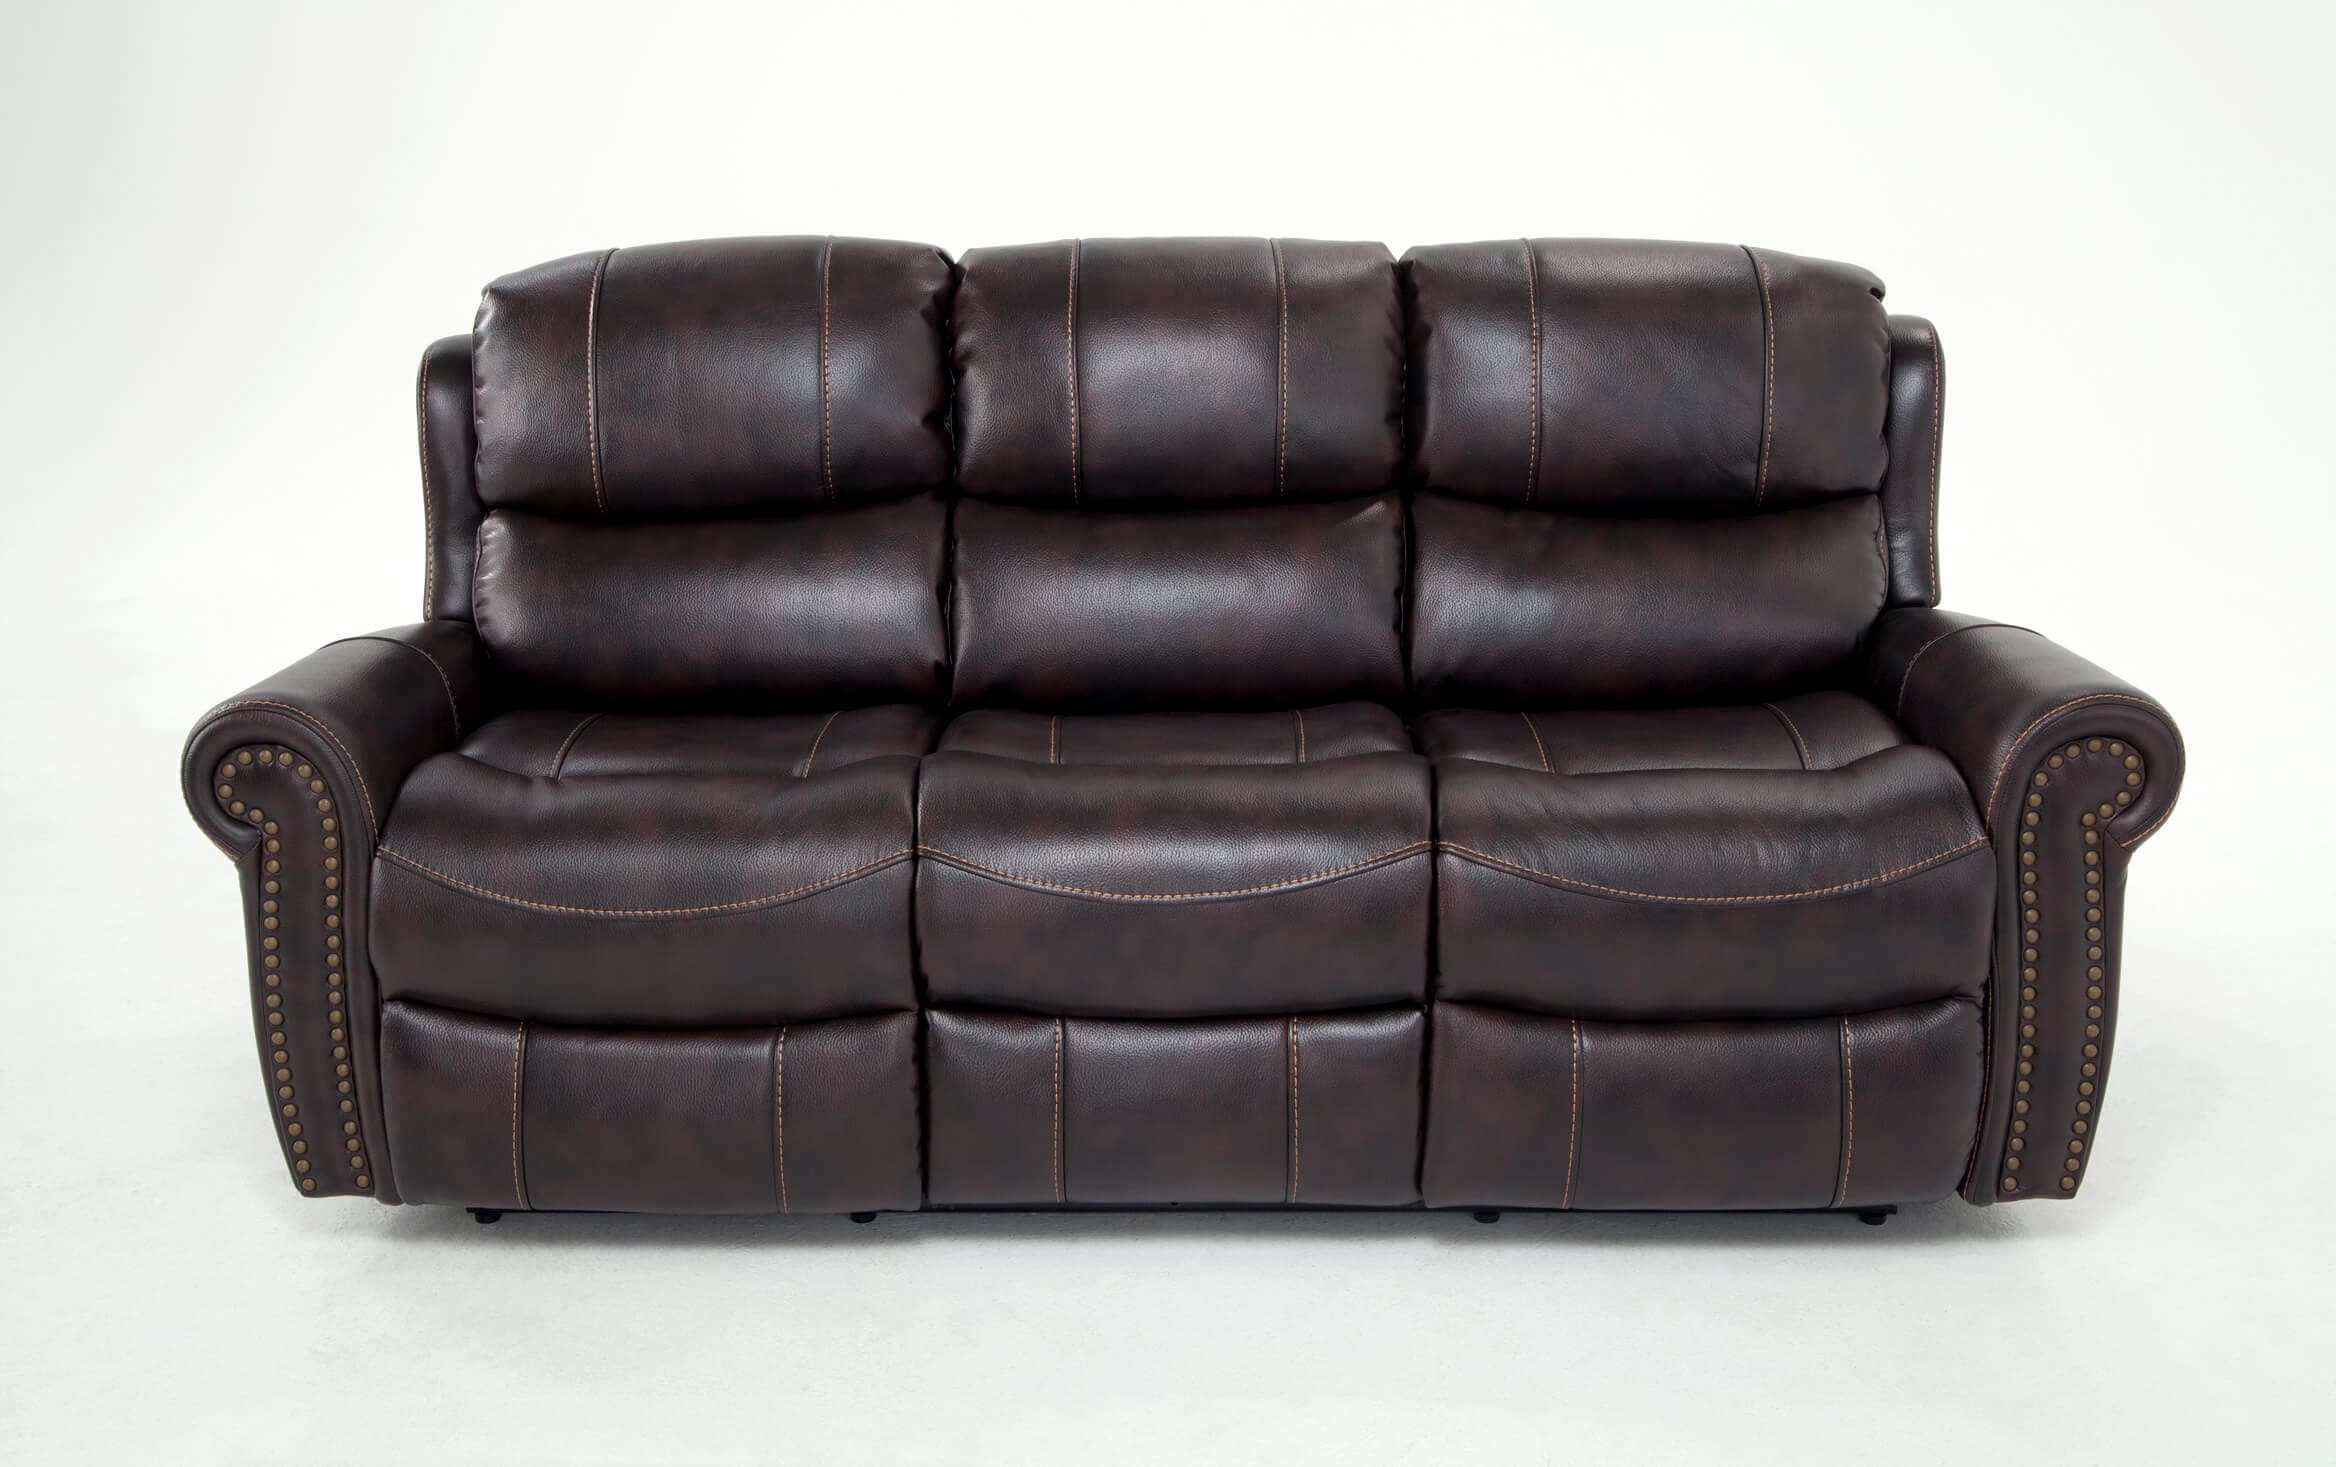 Bobs Furniture Leather Sofa : Trailblazer Gray Leather With Regard To Lannister Dual Power Reclining Sofas (View 2 of 7)